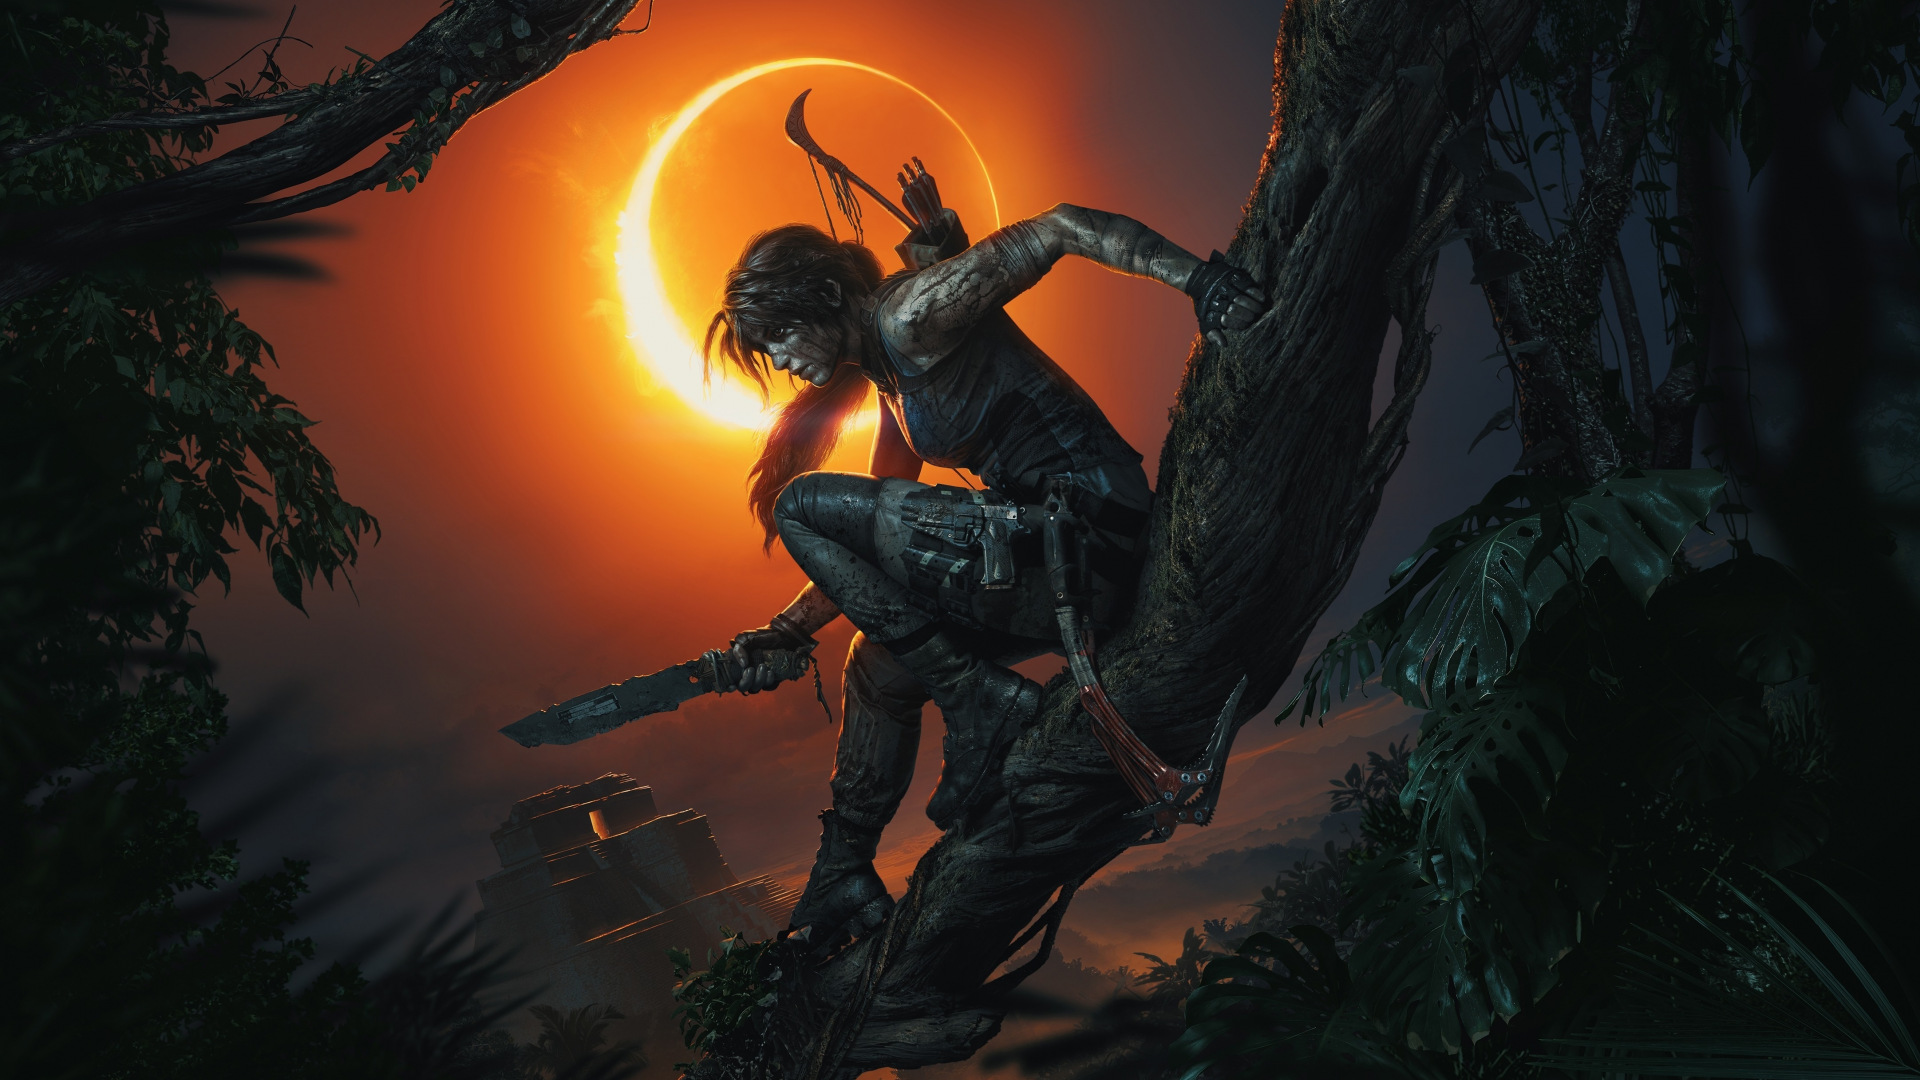 https://www.pdvg.it/wp-content/uploads/2018/09/Shadow-of-the-Tomb-Raider.jpg